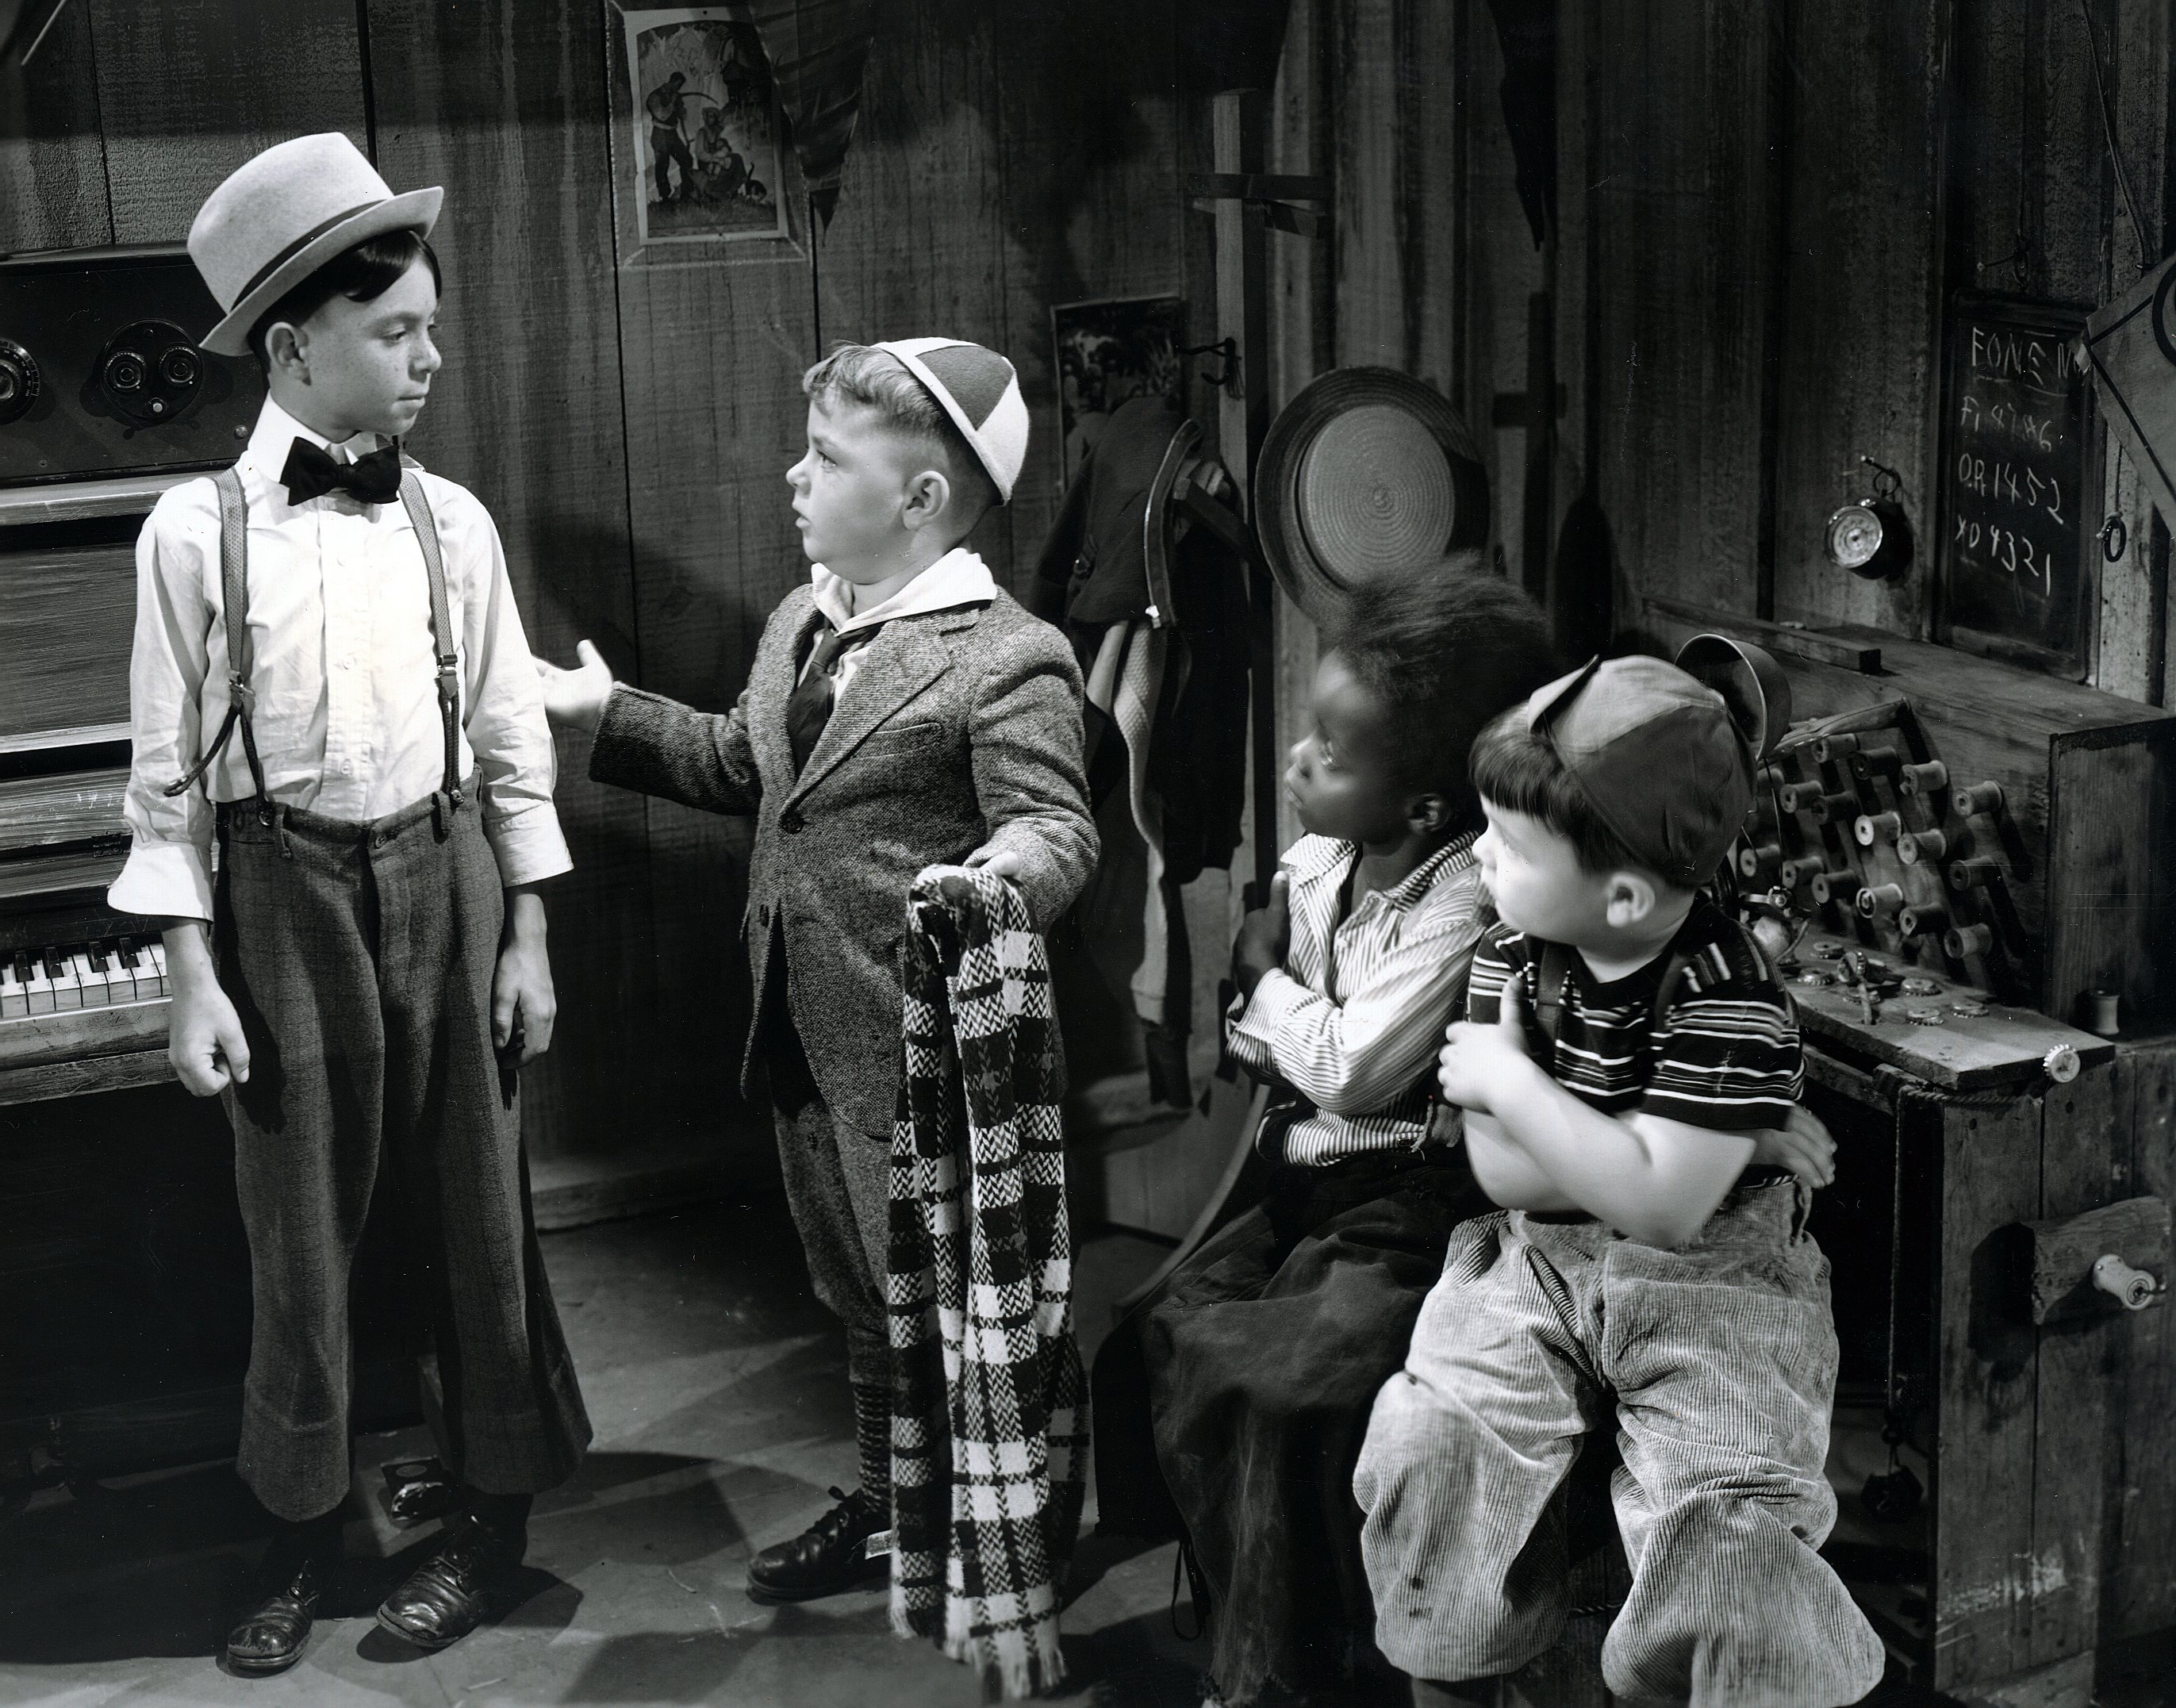 """Carl Switzer as Alfalfa, George McFarland as Spanky, Billie Thomas as Buckwheat and Eugene Lee as Porky in """"Framing Youth,"""" one of The Our Gang series, later to be know as The Little Rascals. Original release was September 11, 1937. 